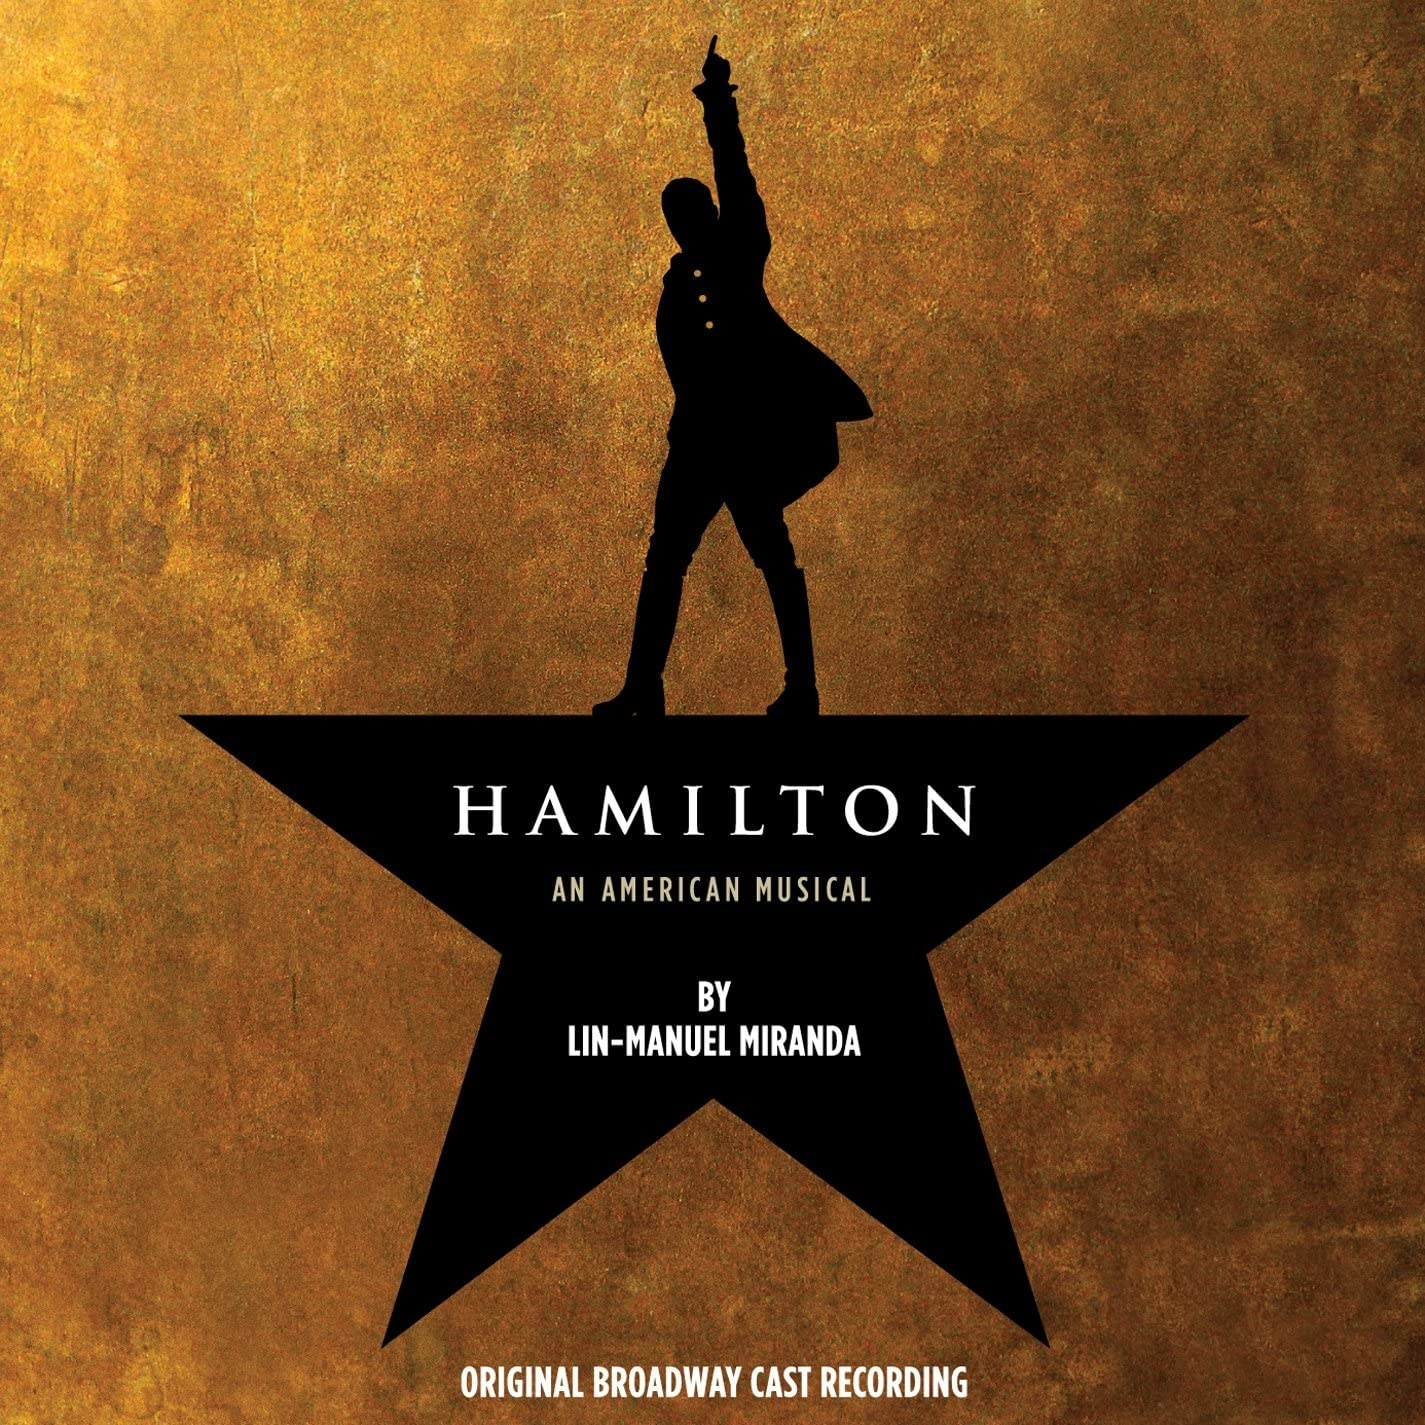 album cover of Hamilton with the silhouette of Hamilton standing on a star, making the top point of it